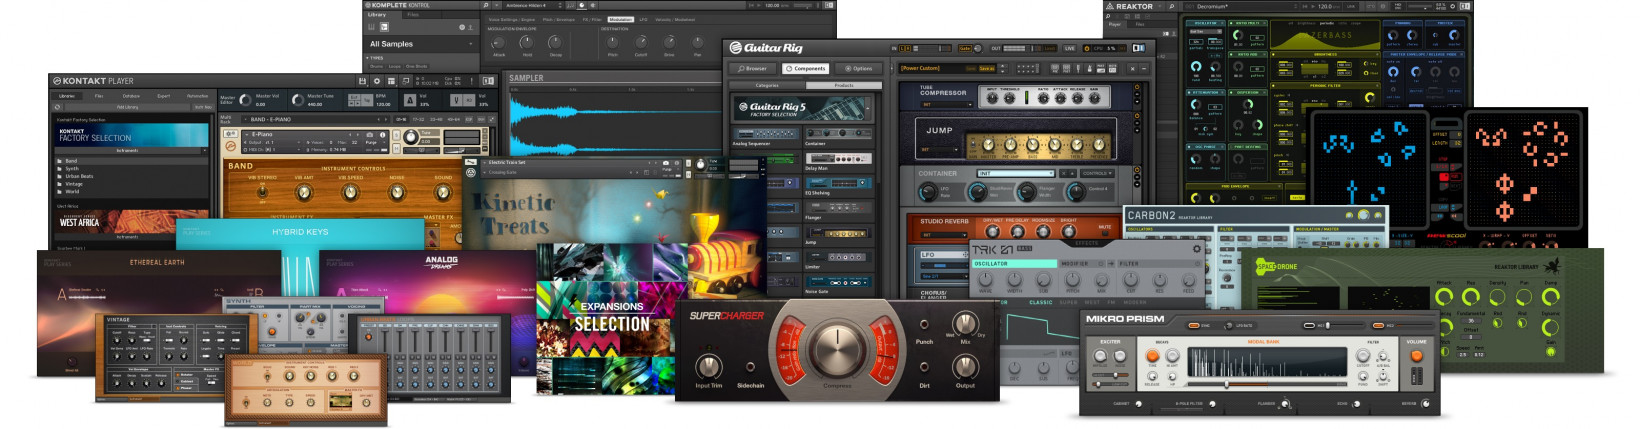 Native Instruments to integrate Sounds com into production workflows